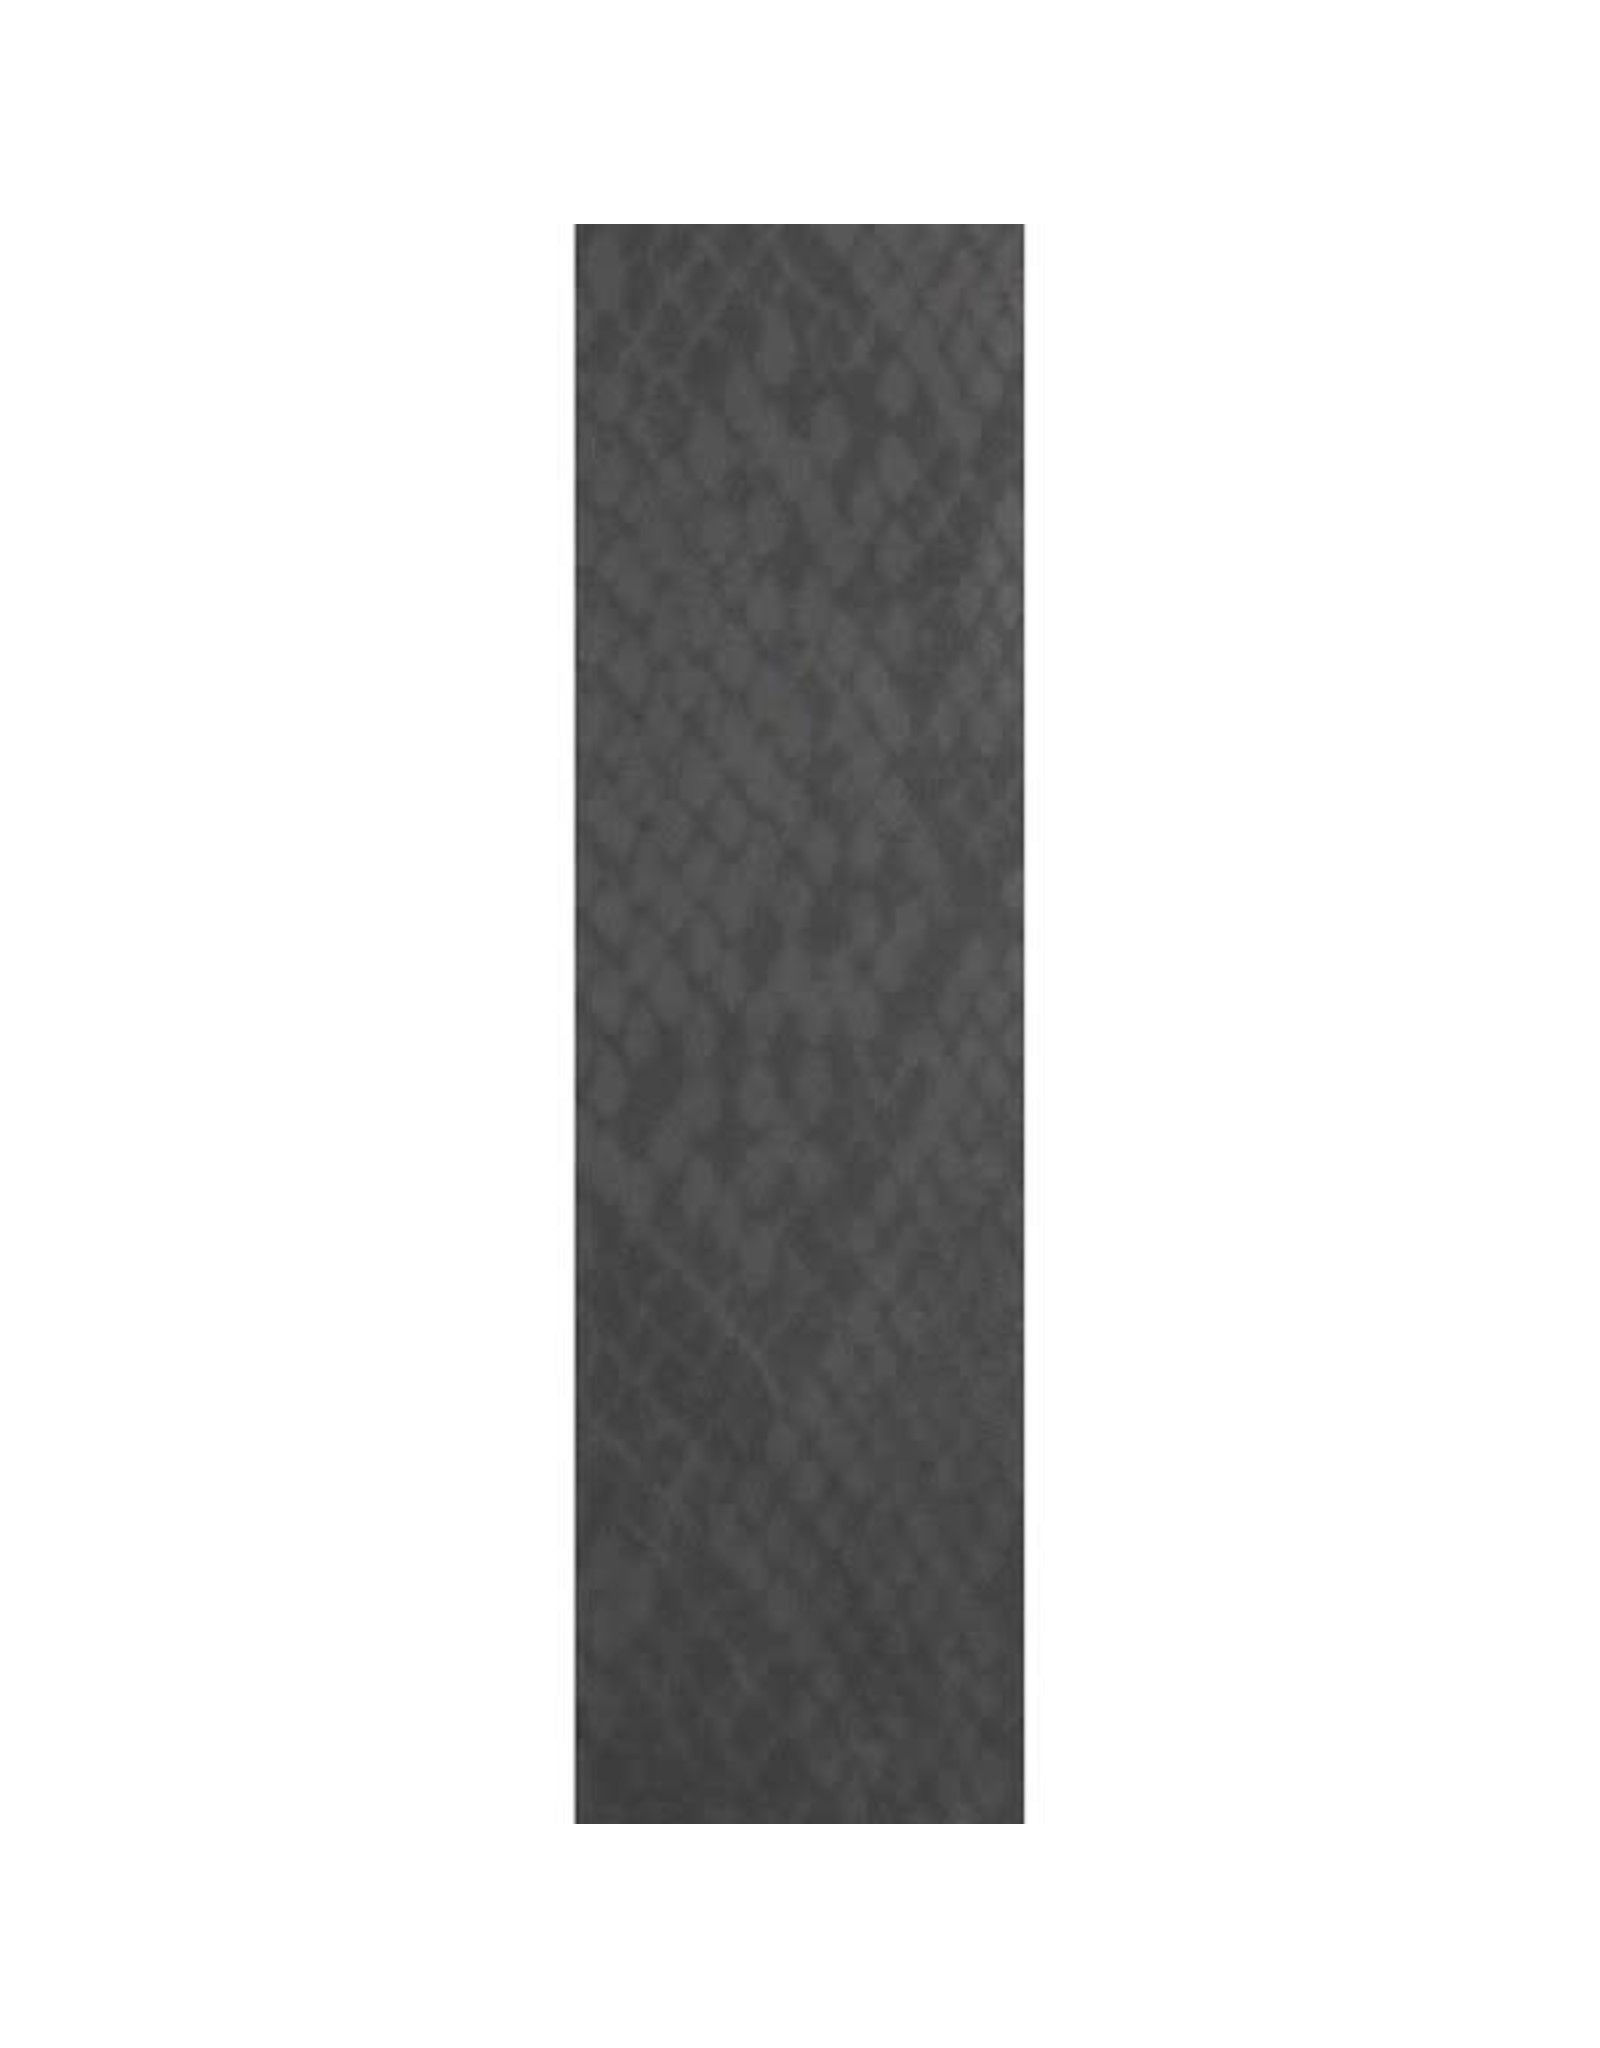 Grizzly Grizzly Snake Skin Cole Griptape Sheet Black 9.0